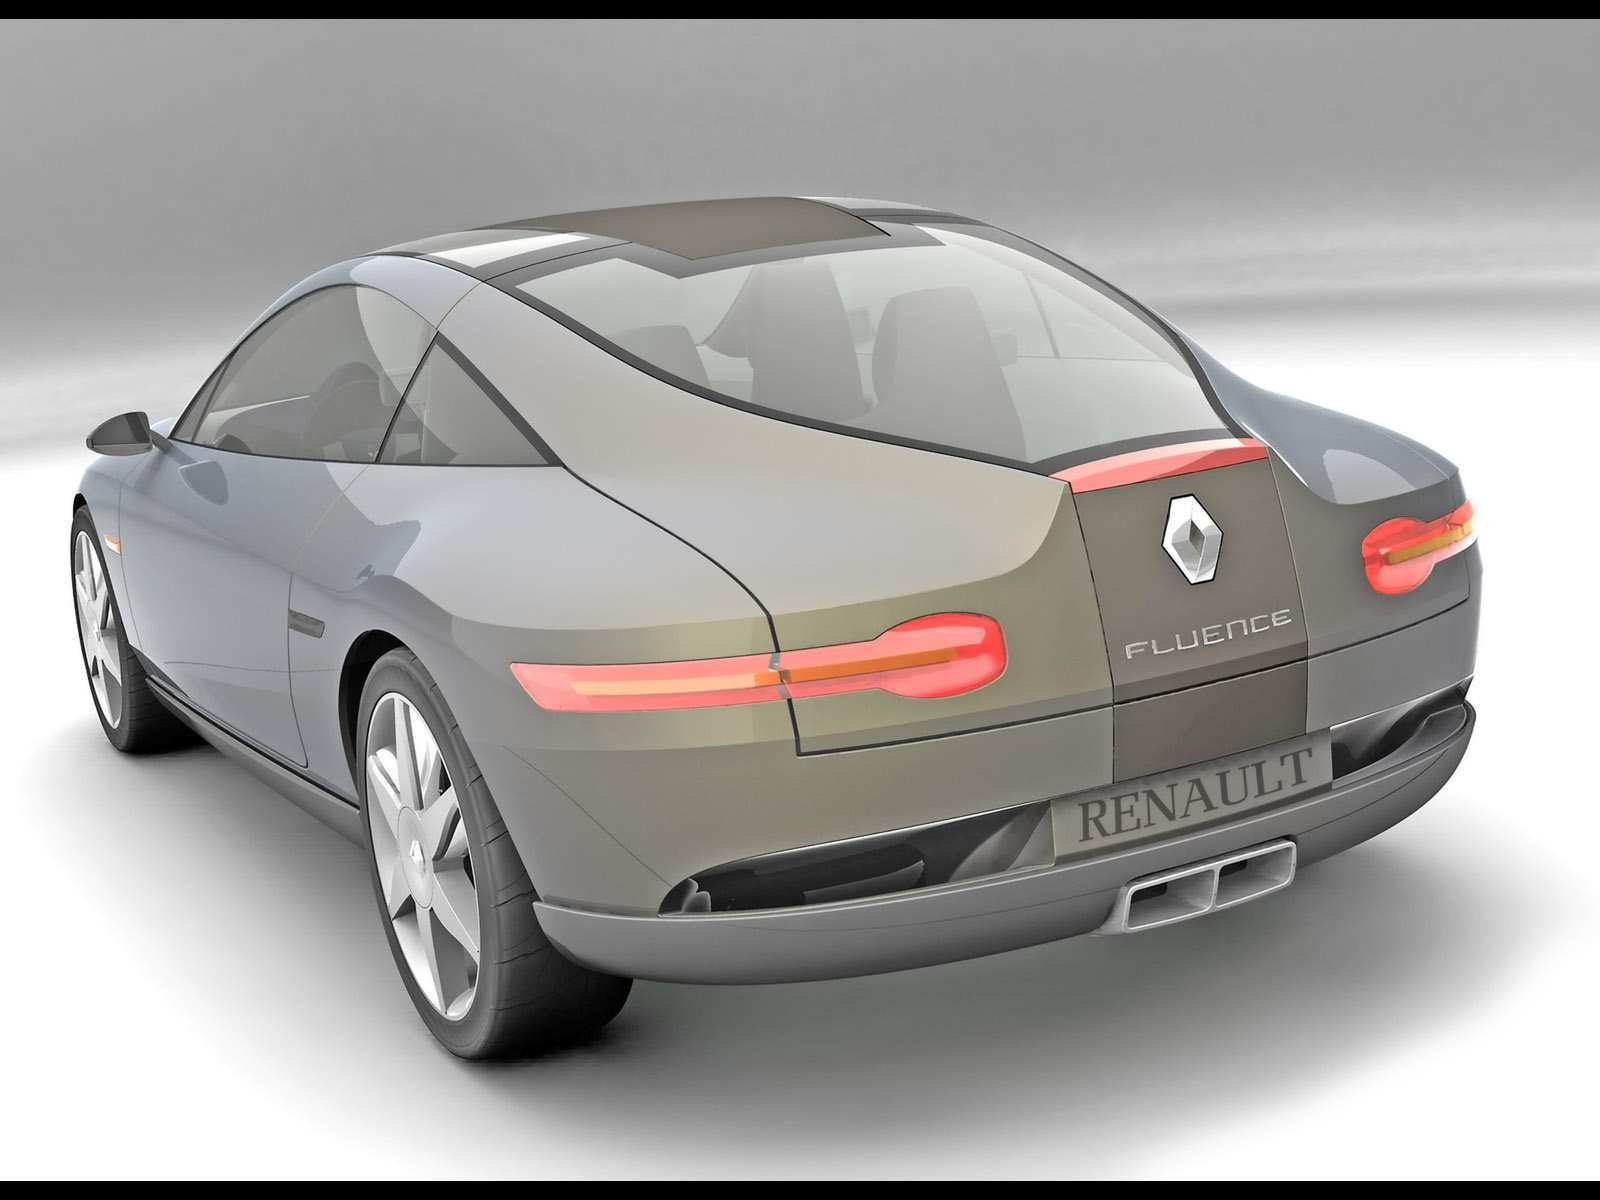 81 Gallery of Renault Concept 2020 Price and Review with Renault Concept 2020